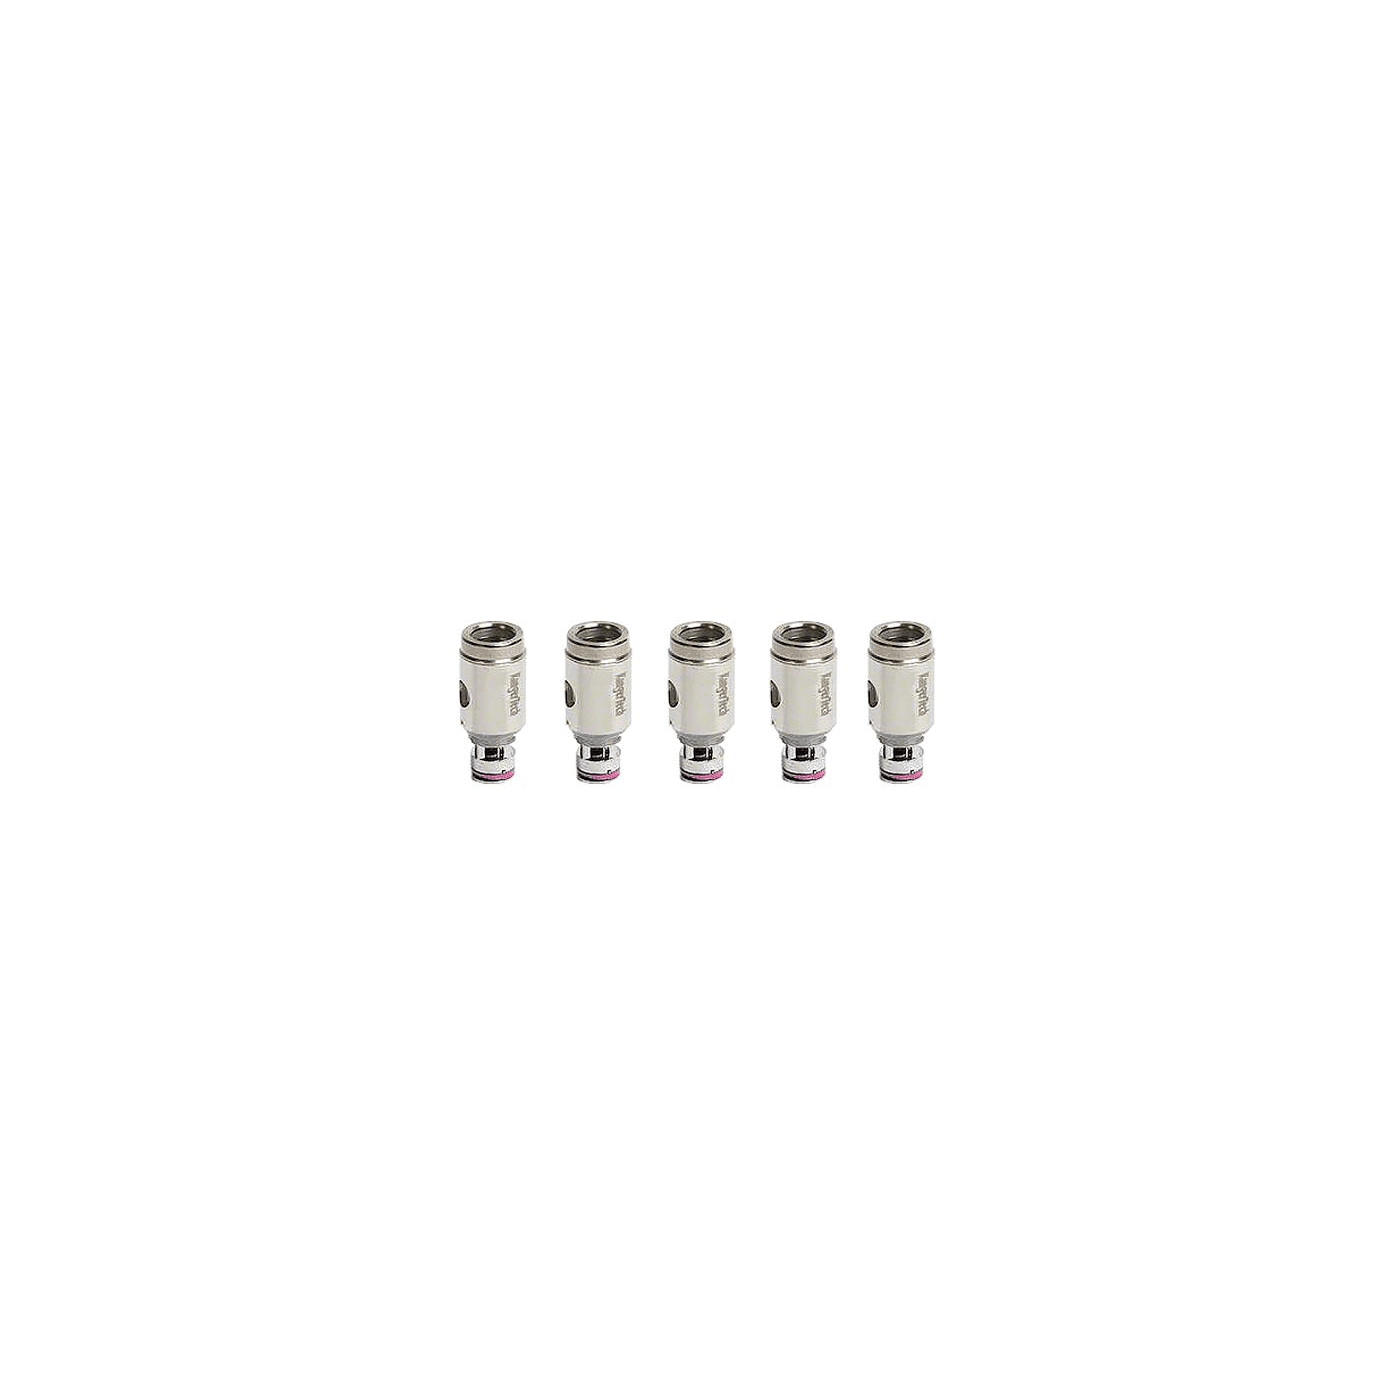 Kanger SSOCC SS316L Replacement Coil - 5 Pack